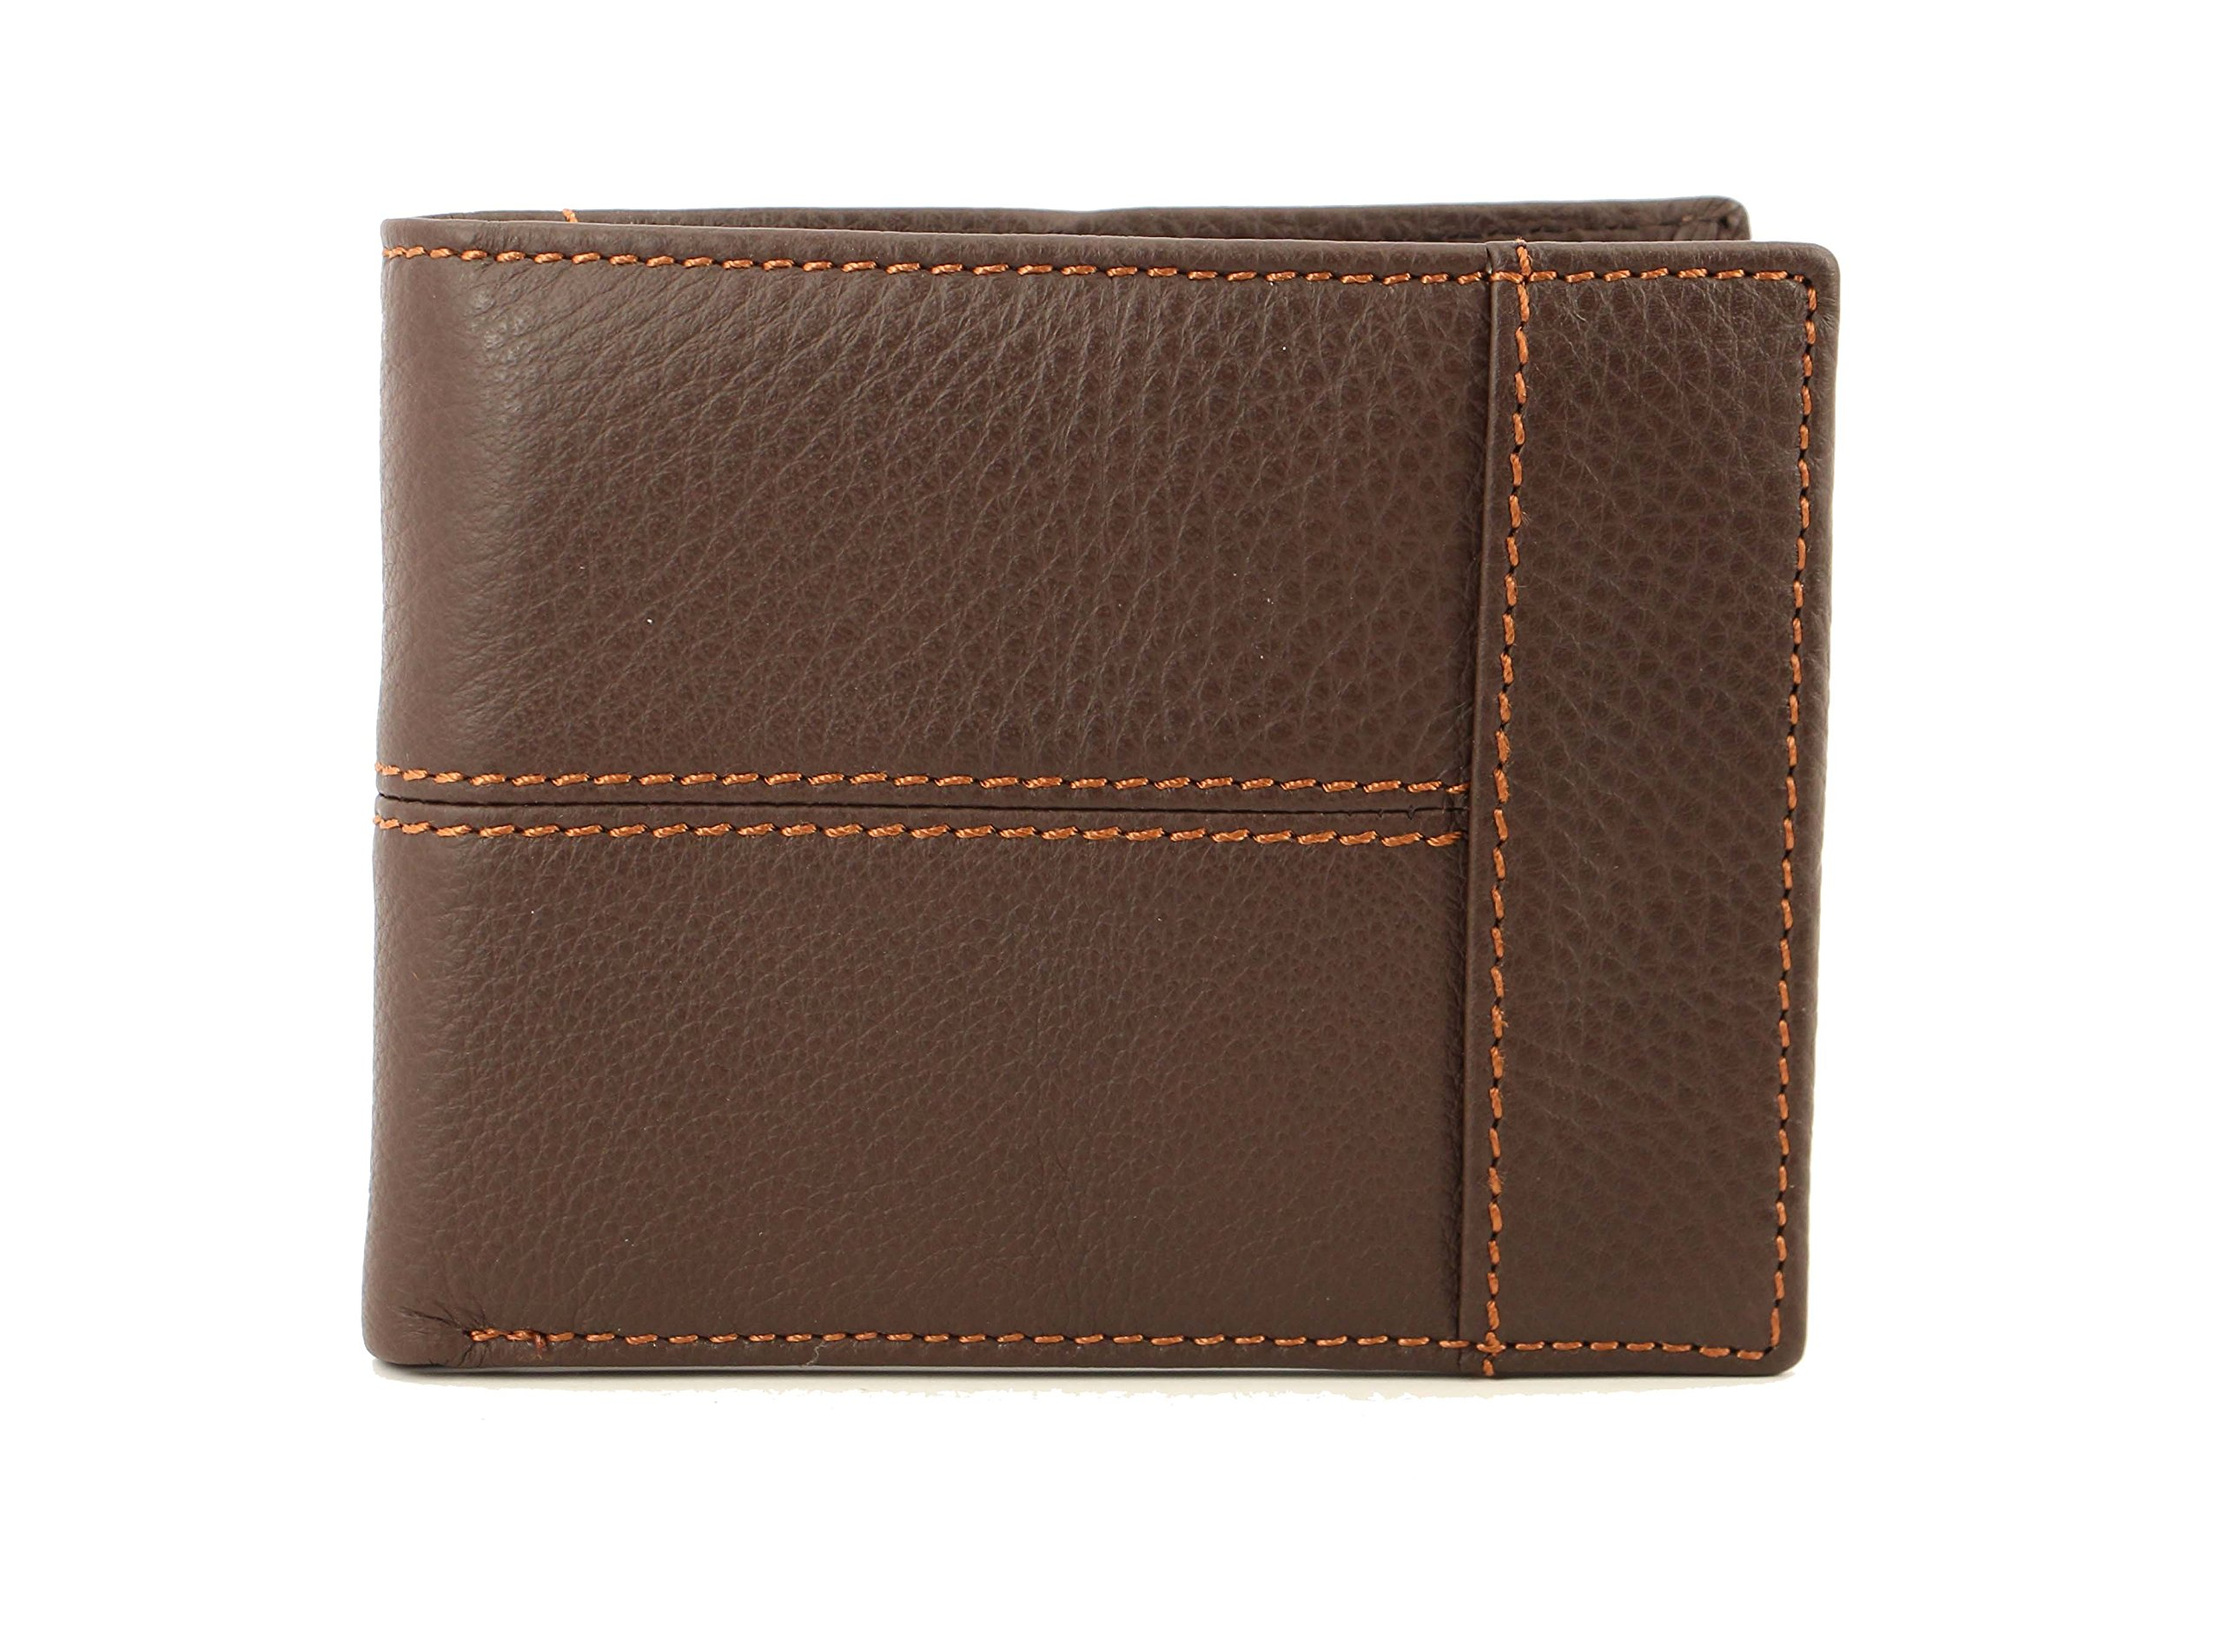 Cow Leather Fashion Men's Black Color Purse Wallet Billfold (Russet)